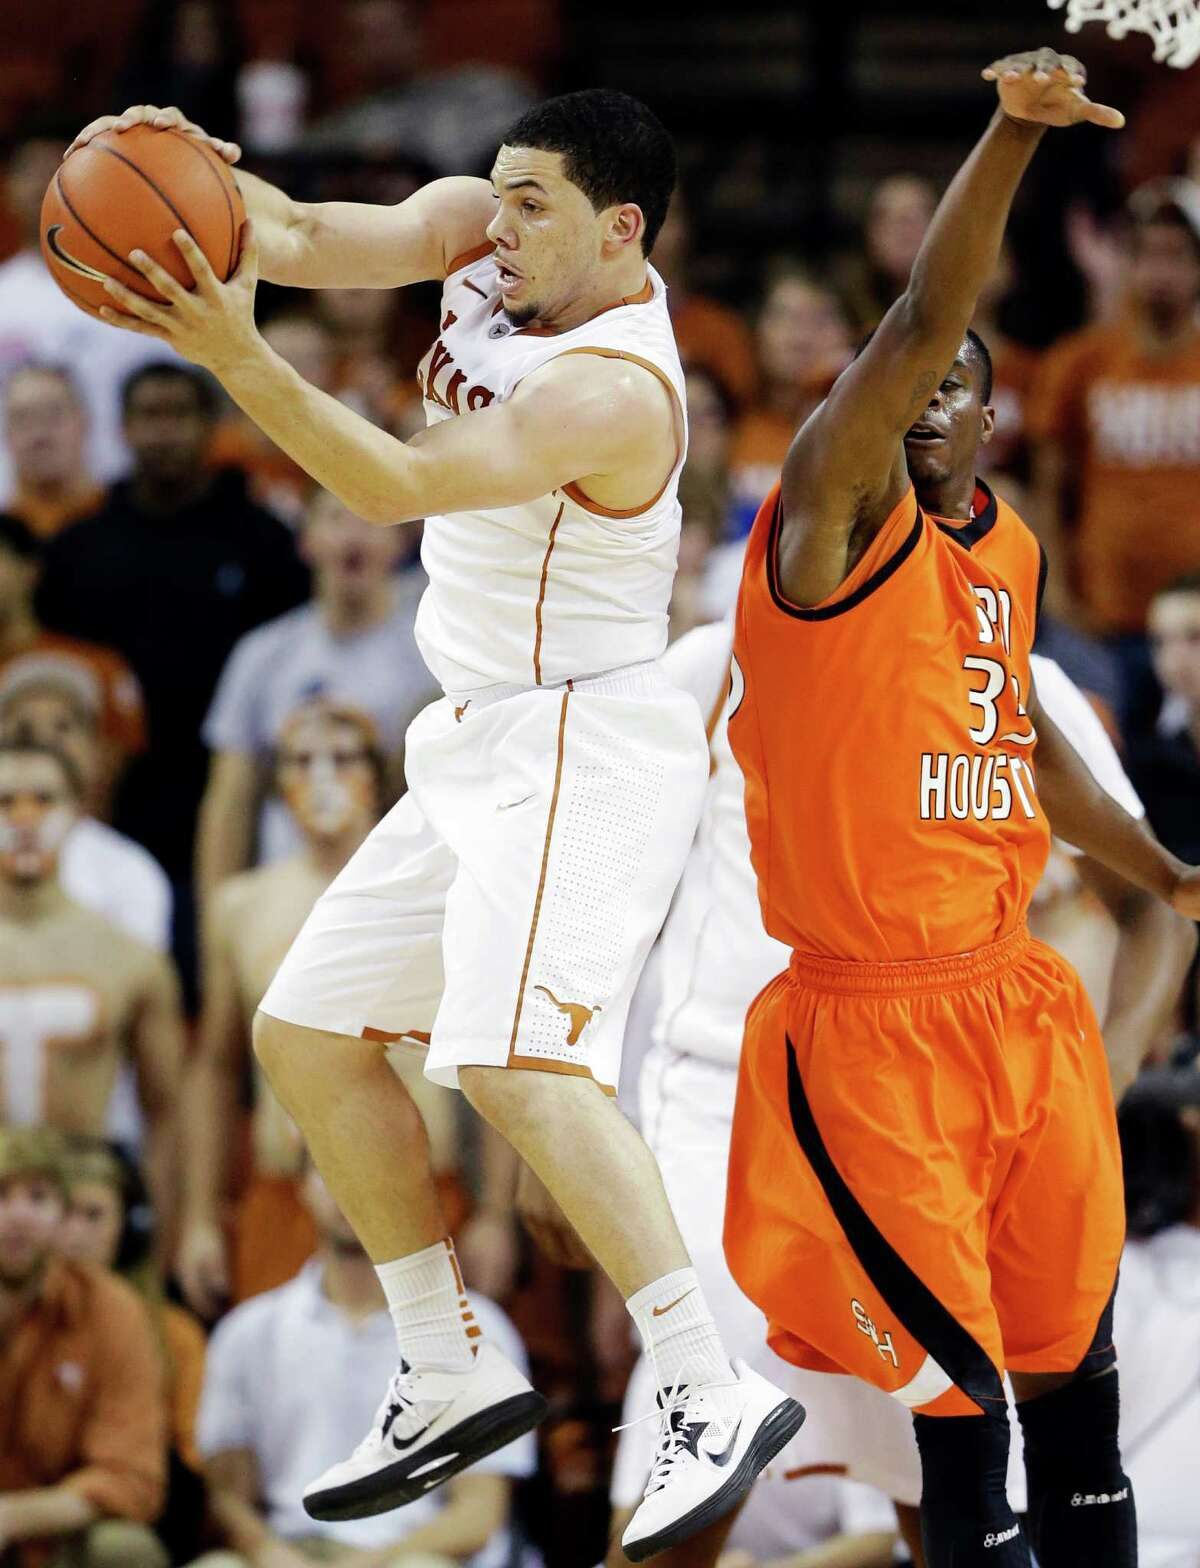 Texas' Javan Felix, left, grabs a loose ball in front of Sam Houston State's Nathaniel Mason, right, during the second half of an NCAA college basketball game, Tuesday, Nov. 27, 2012, in Austin, Texas. Texas won 65-37. (AP Photo/Eric Gay)